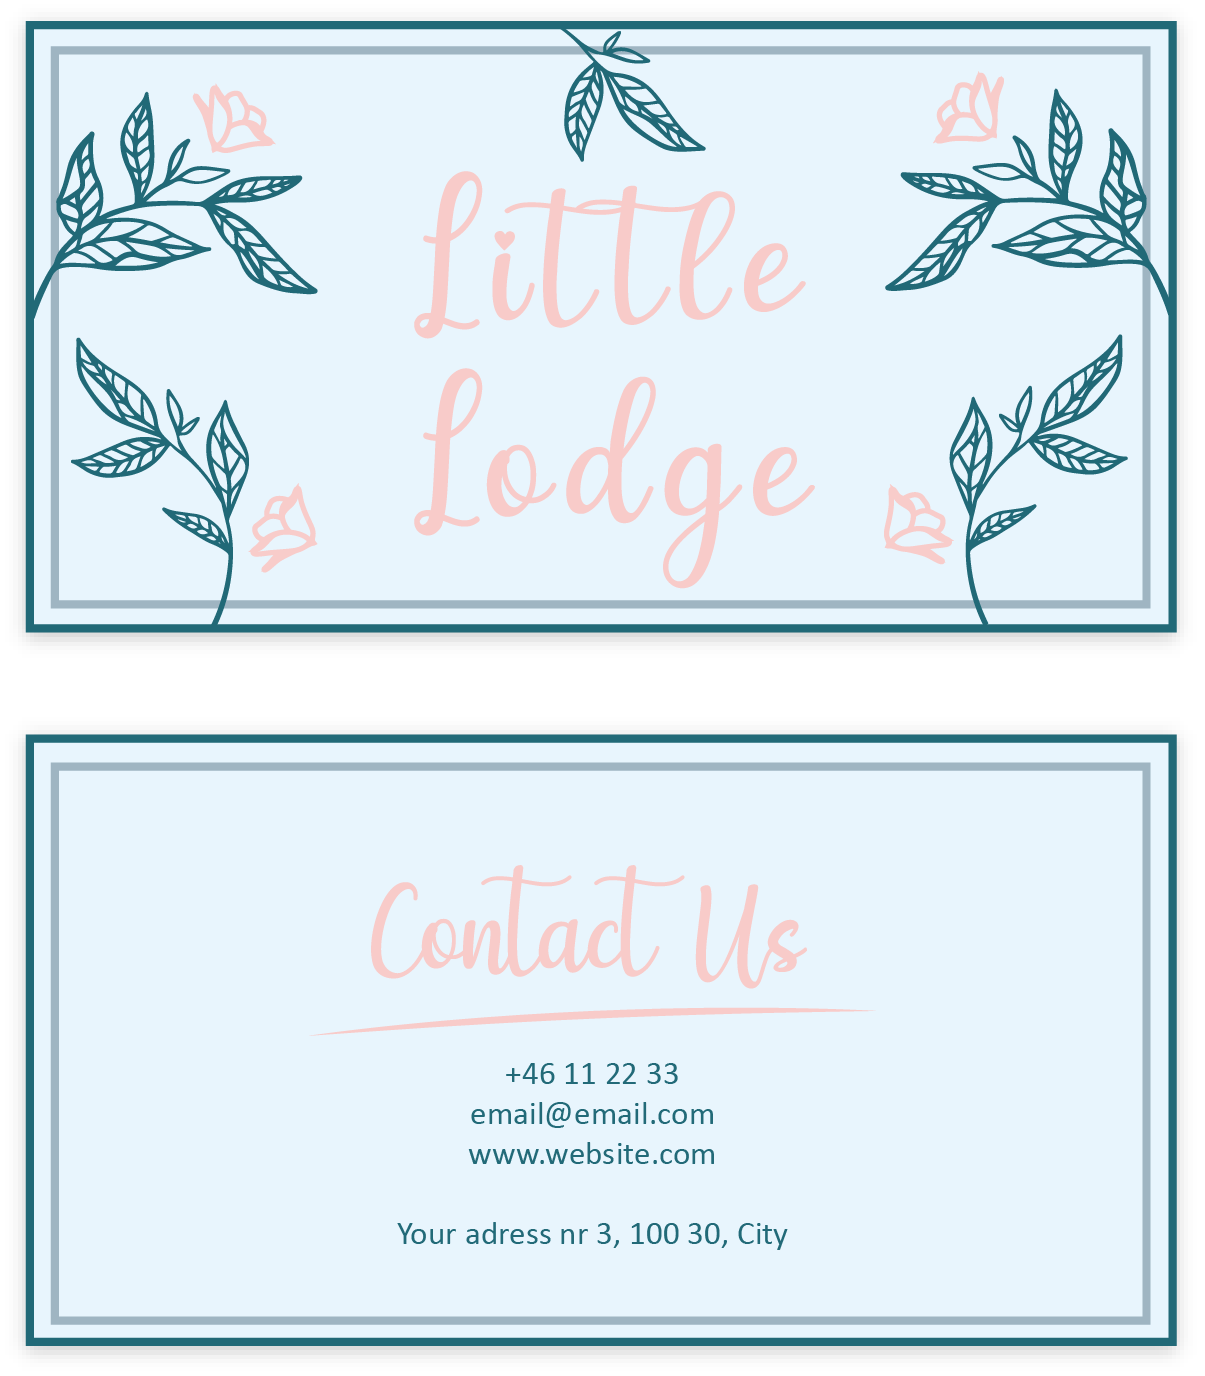 Business card little lodge